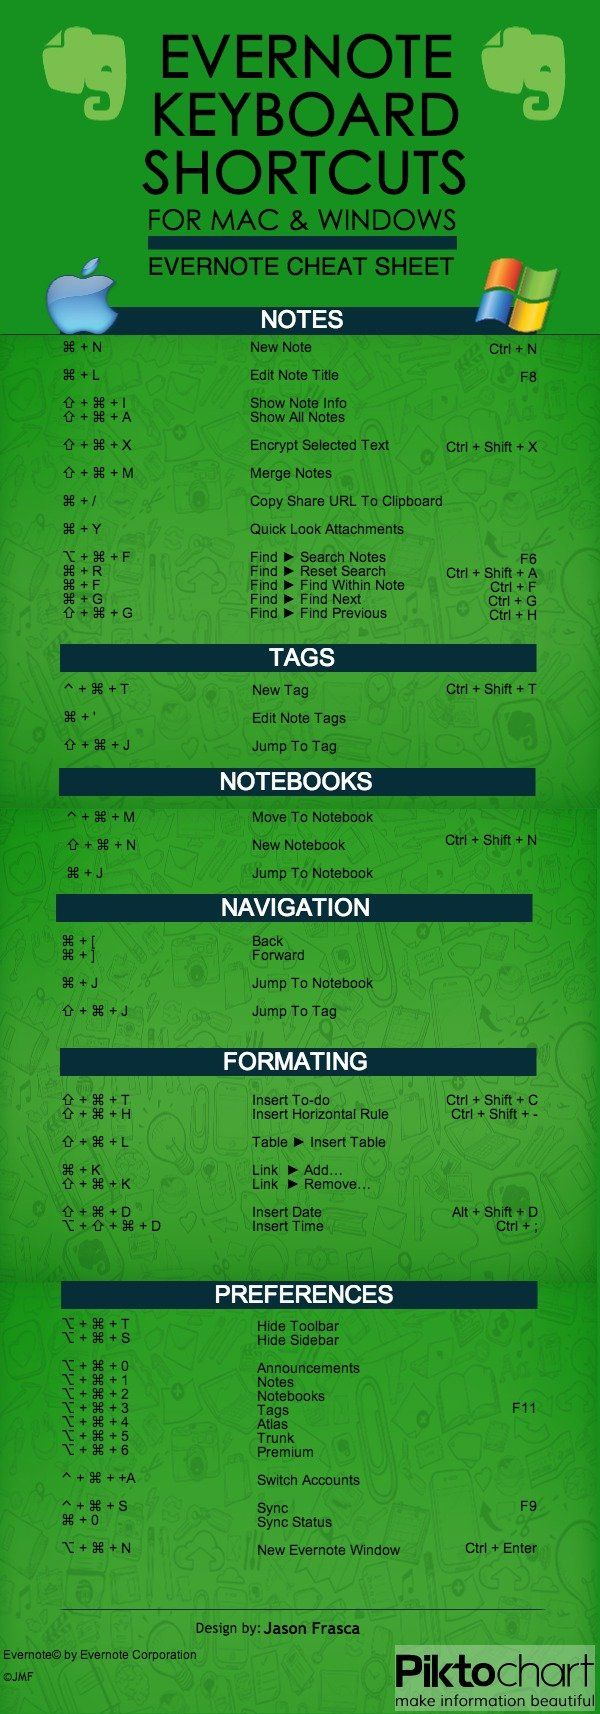 evernote shortcuts